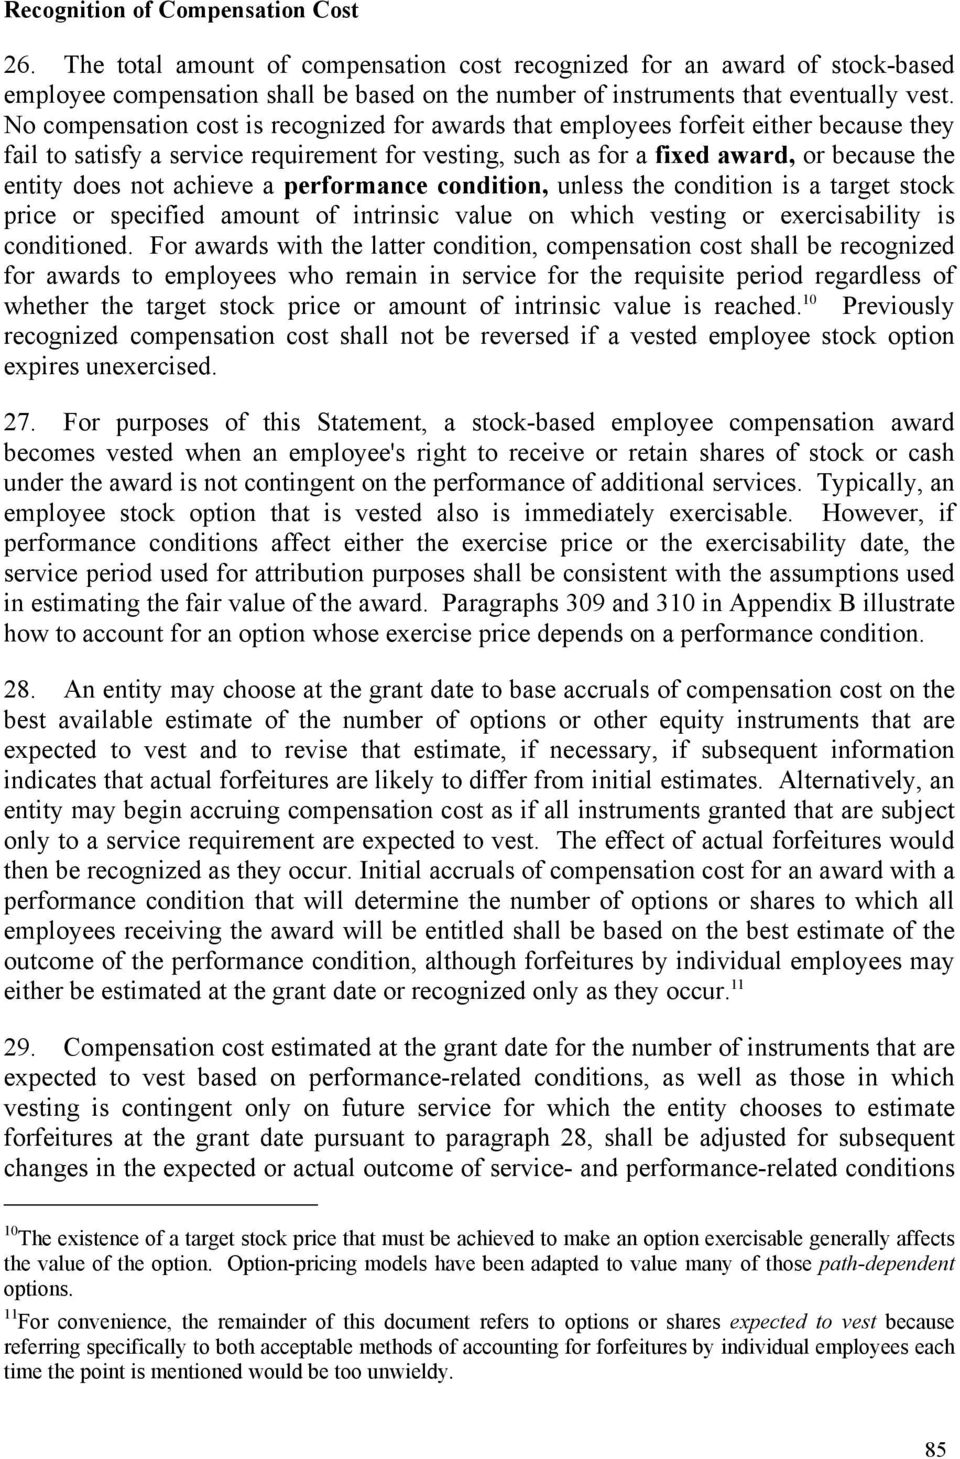 No compensation cost is recognized for awards that employees forfeit either because they fail to satisfy a service requirement for vesting, such as for a fixed award, or because the entity does not